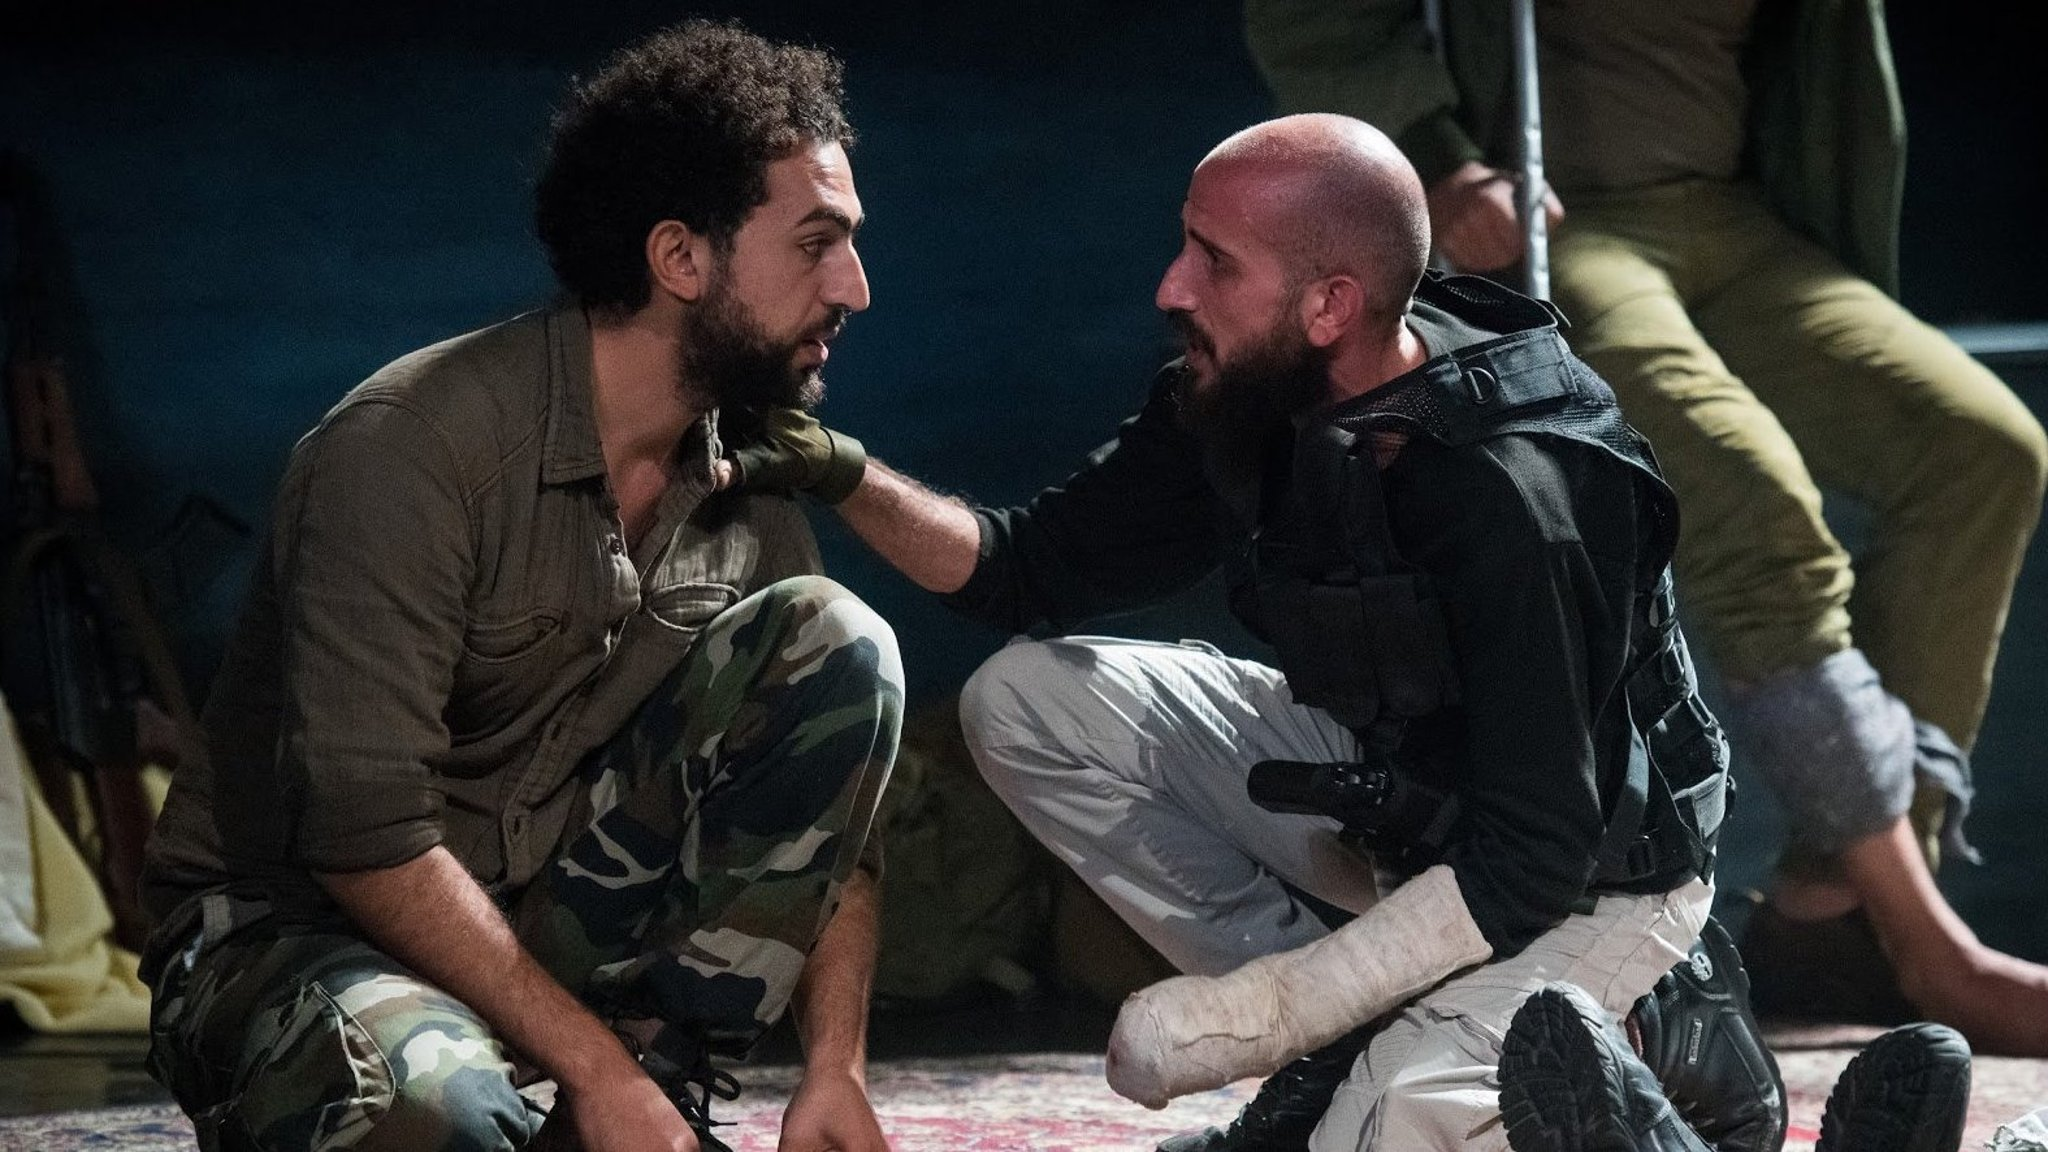 The Siege — a work of raw theatrical power about Palestinian combatants